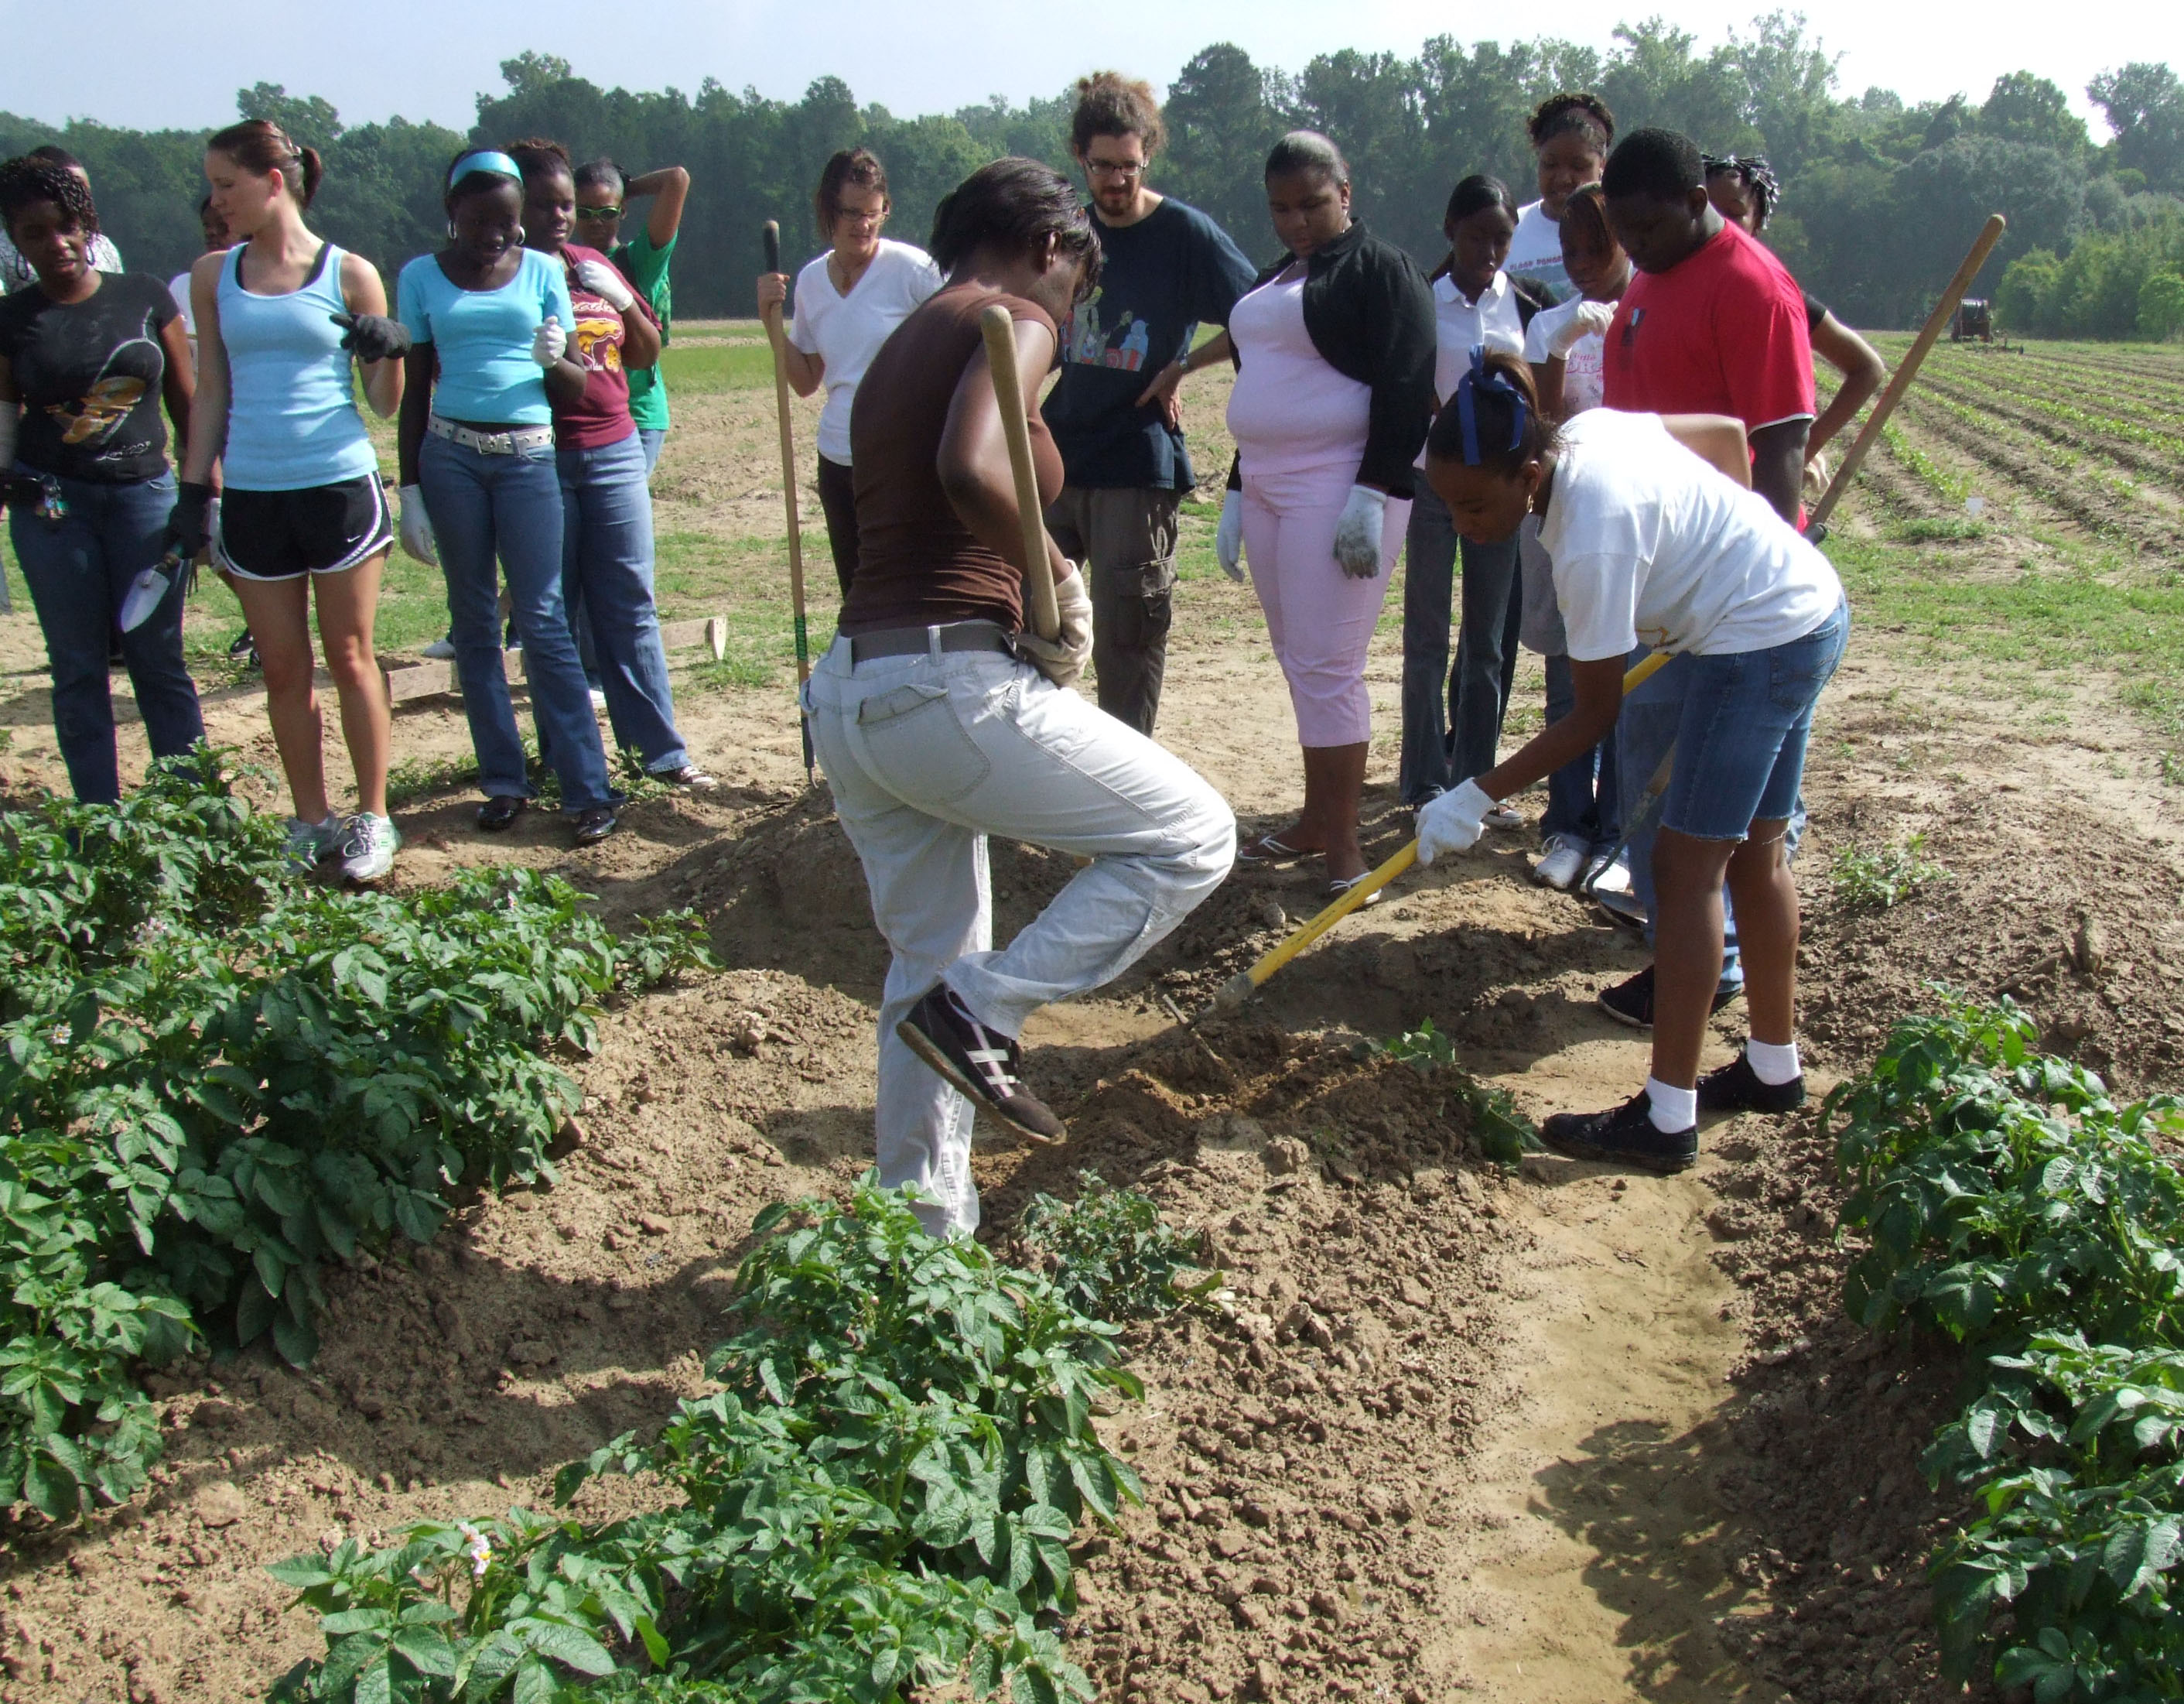 Planting kicks off Baton Rouge high school students' summer farming experience